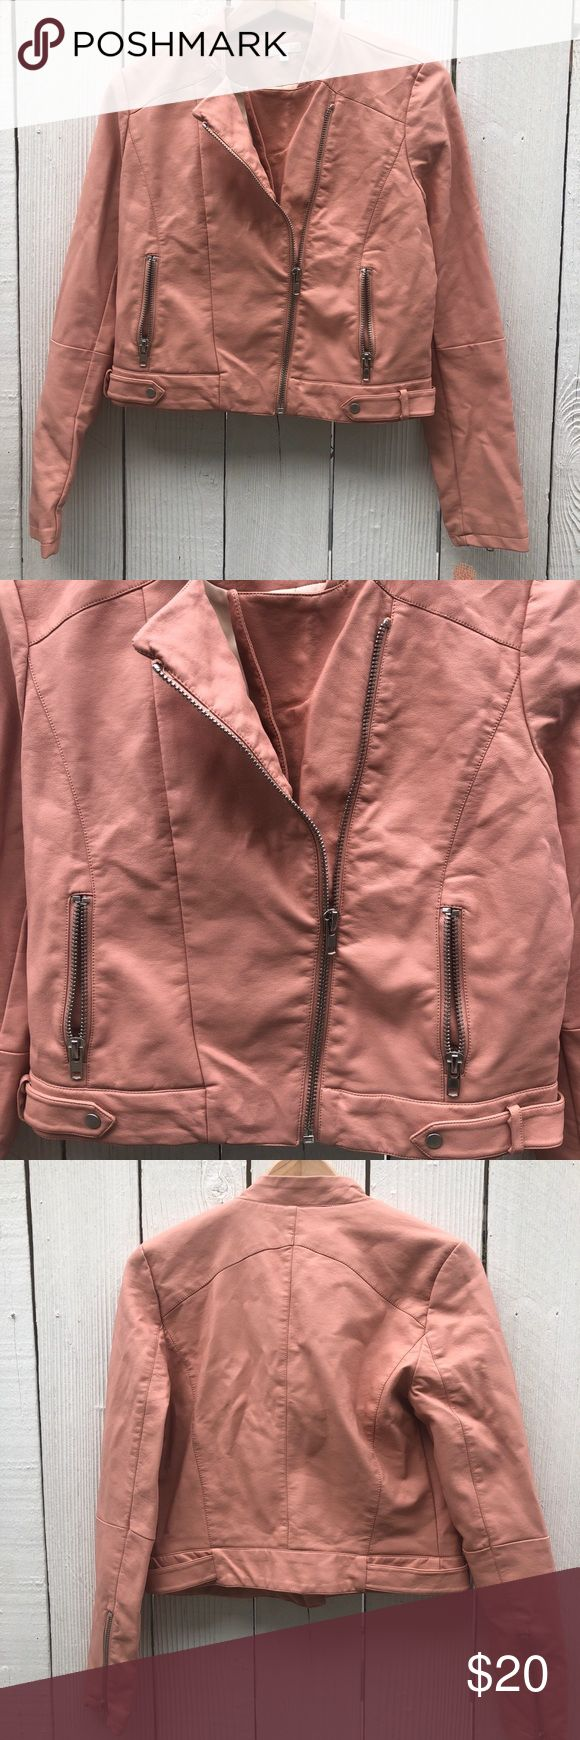 Gianni Bini jacket! Brand new! Brand new Gianni Bini jacket! Gianni Bini Jackets & Coats